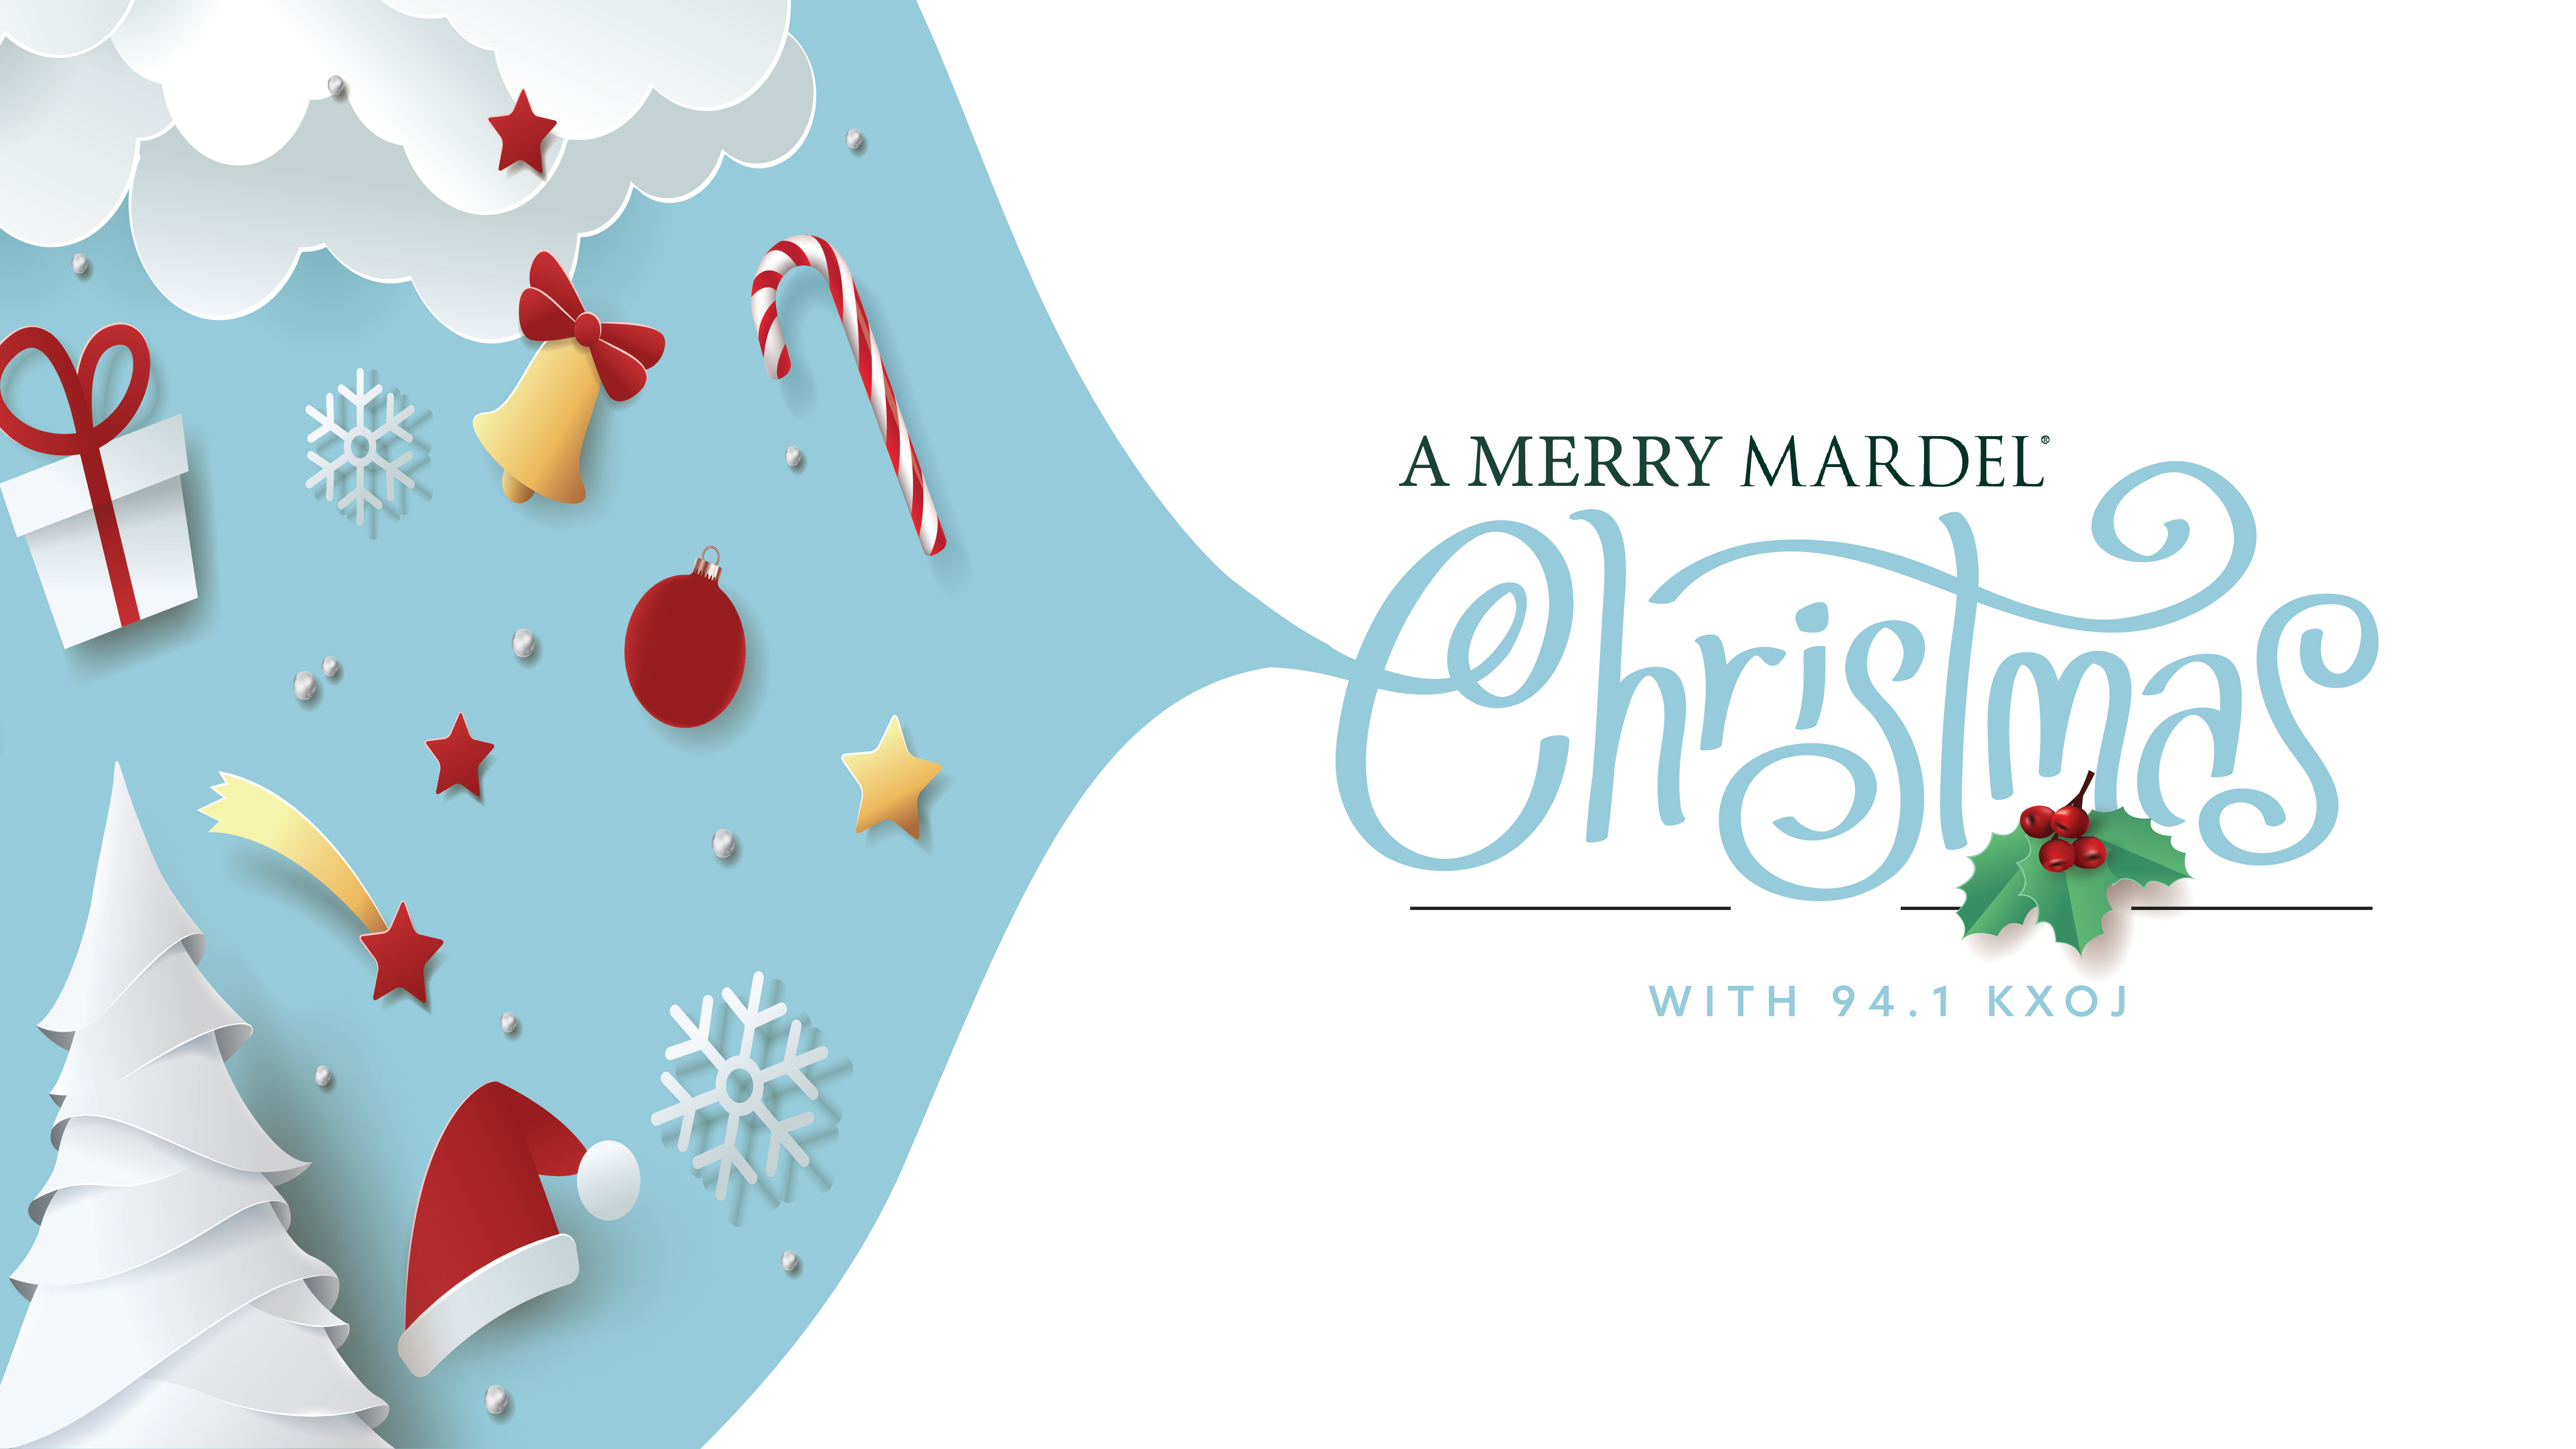 Win A Merry Mardel Christmas